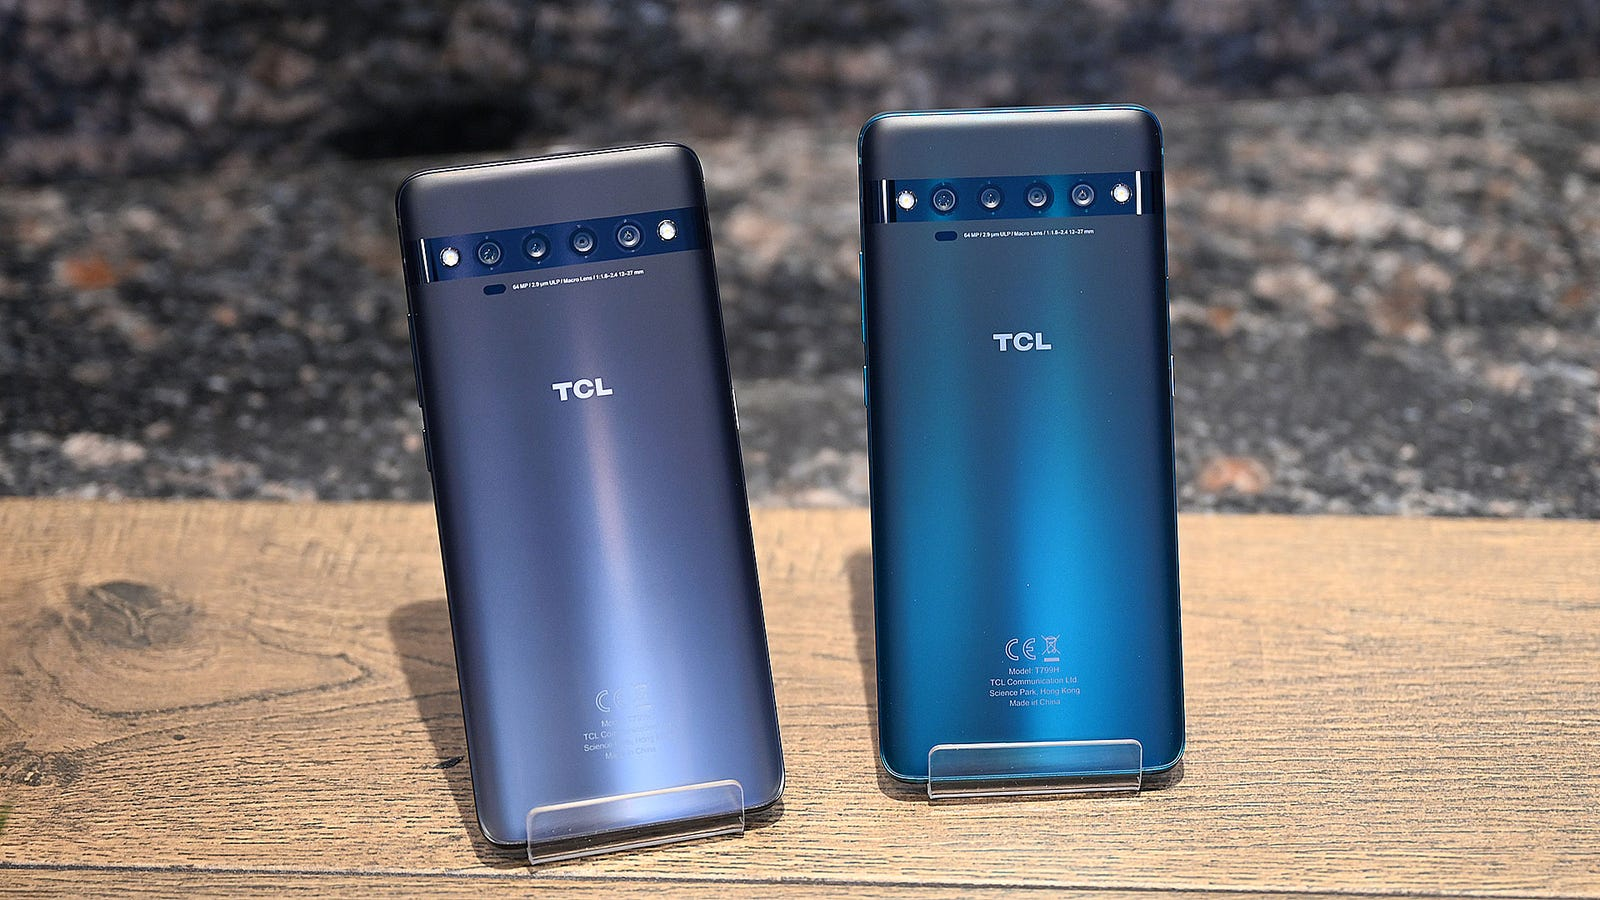 Here's a closer look at the TCL 10 Pro, which looks like the most interesting of TCL's upcoming trio of phones.